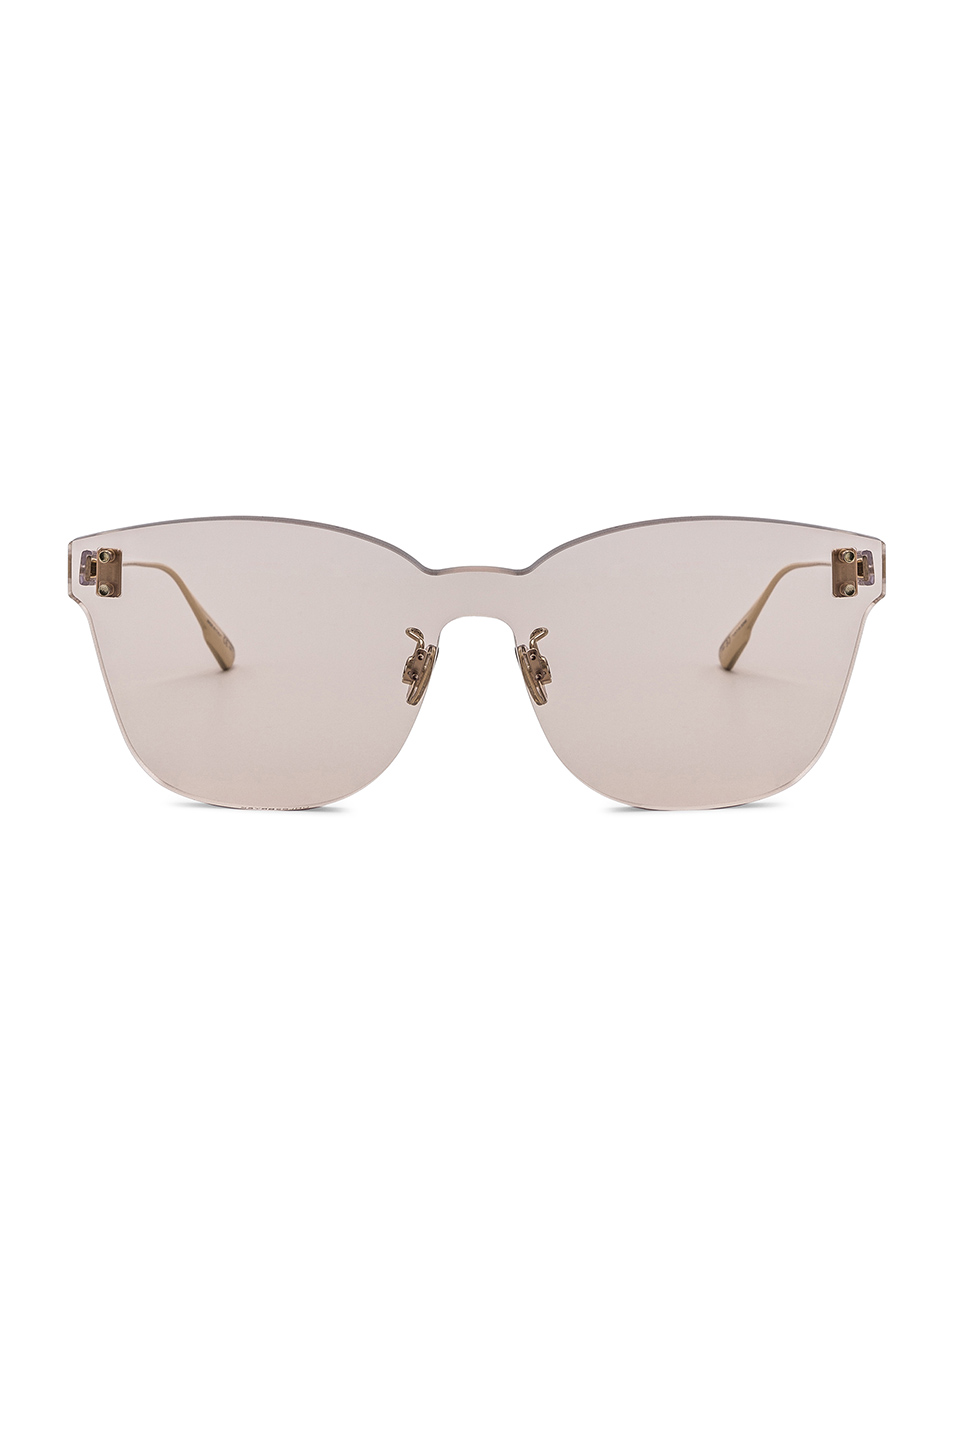 b634a77653ec Buy Original Dior Color Quake 2 Sunglasses at Indonesia